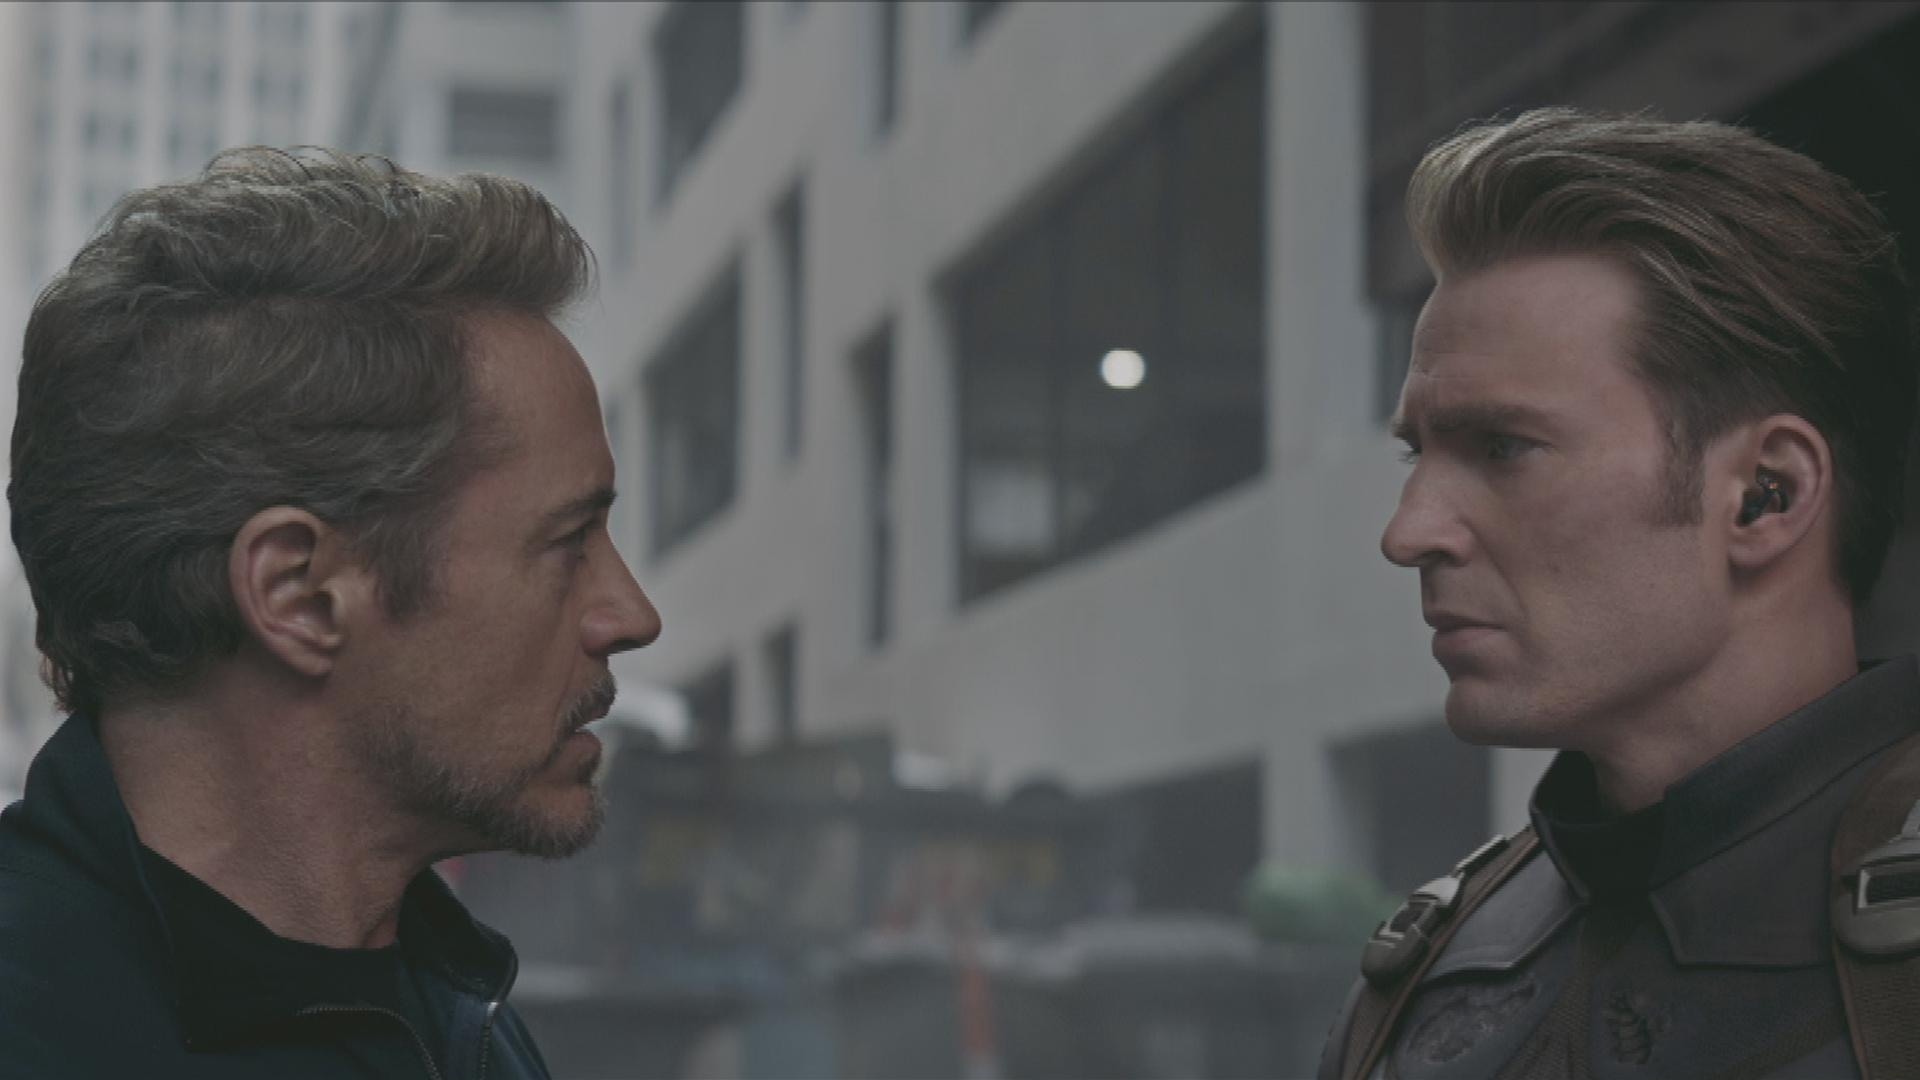 Avengers: Endgame': 8 Theories on How the Heroes Will Undo